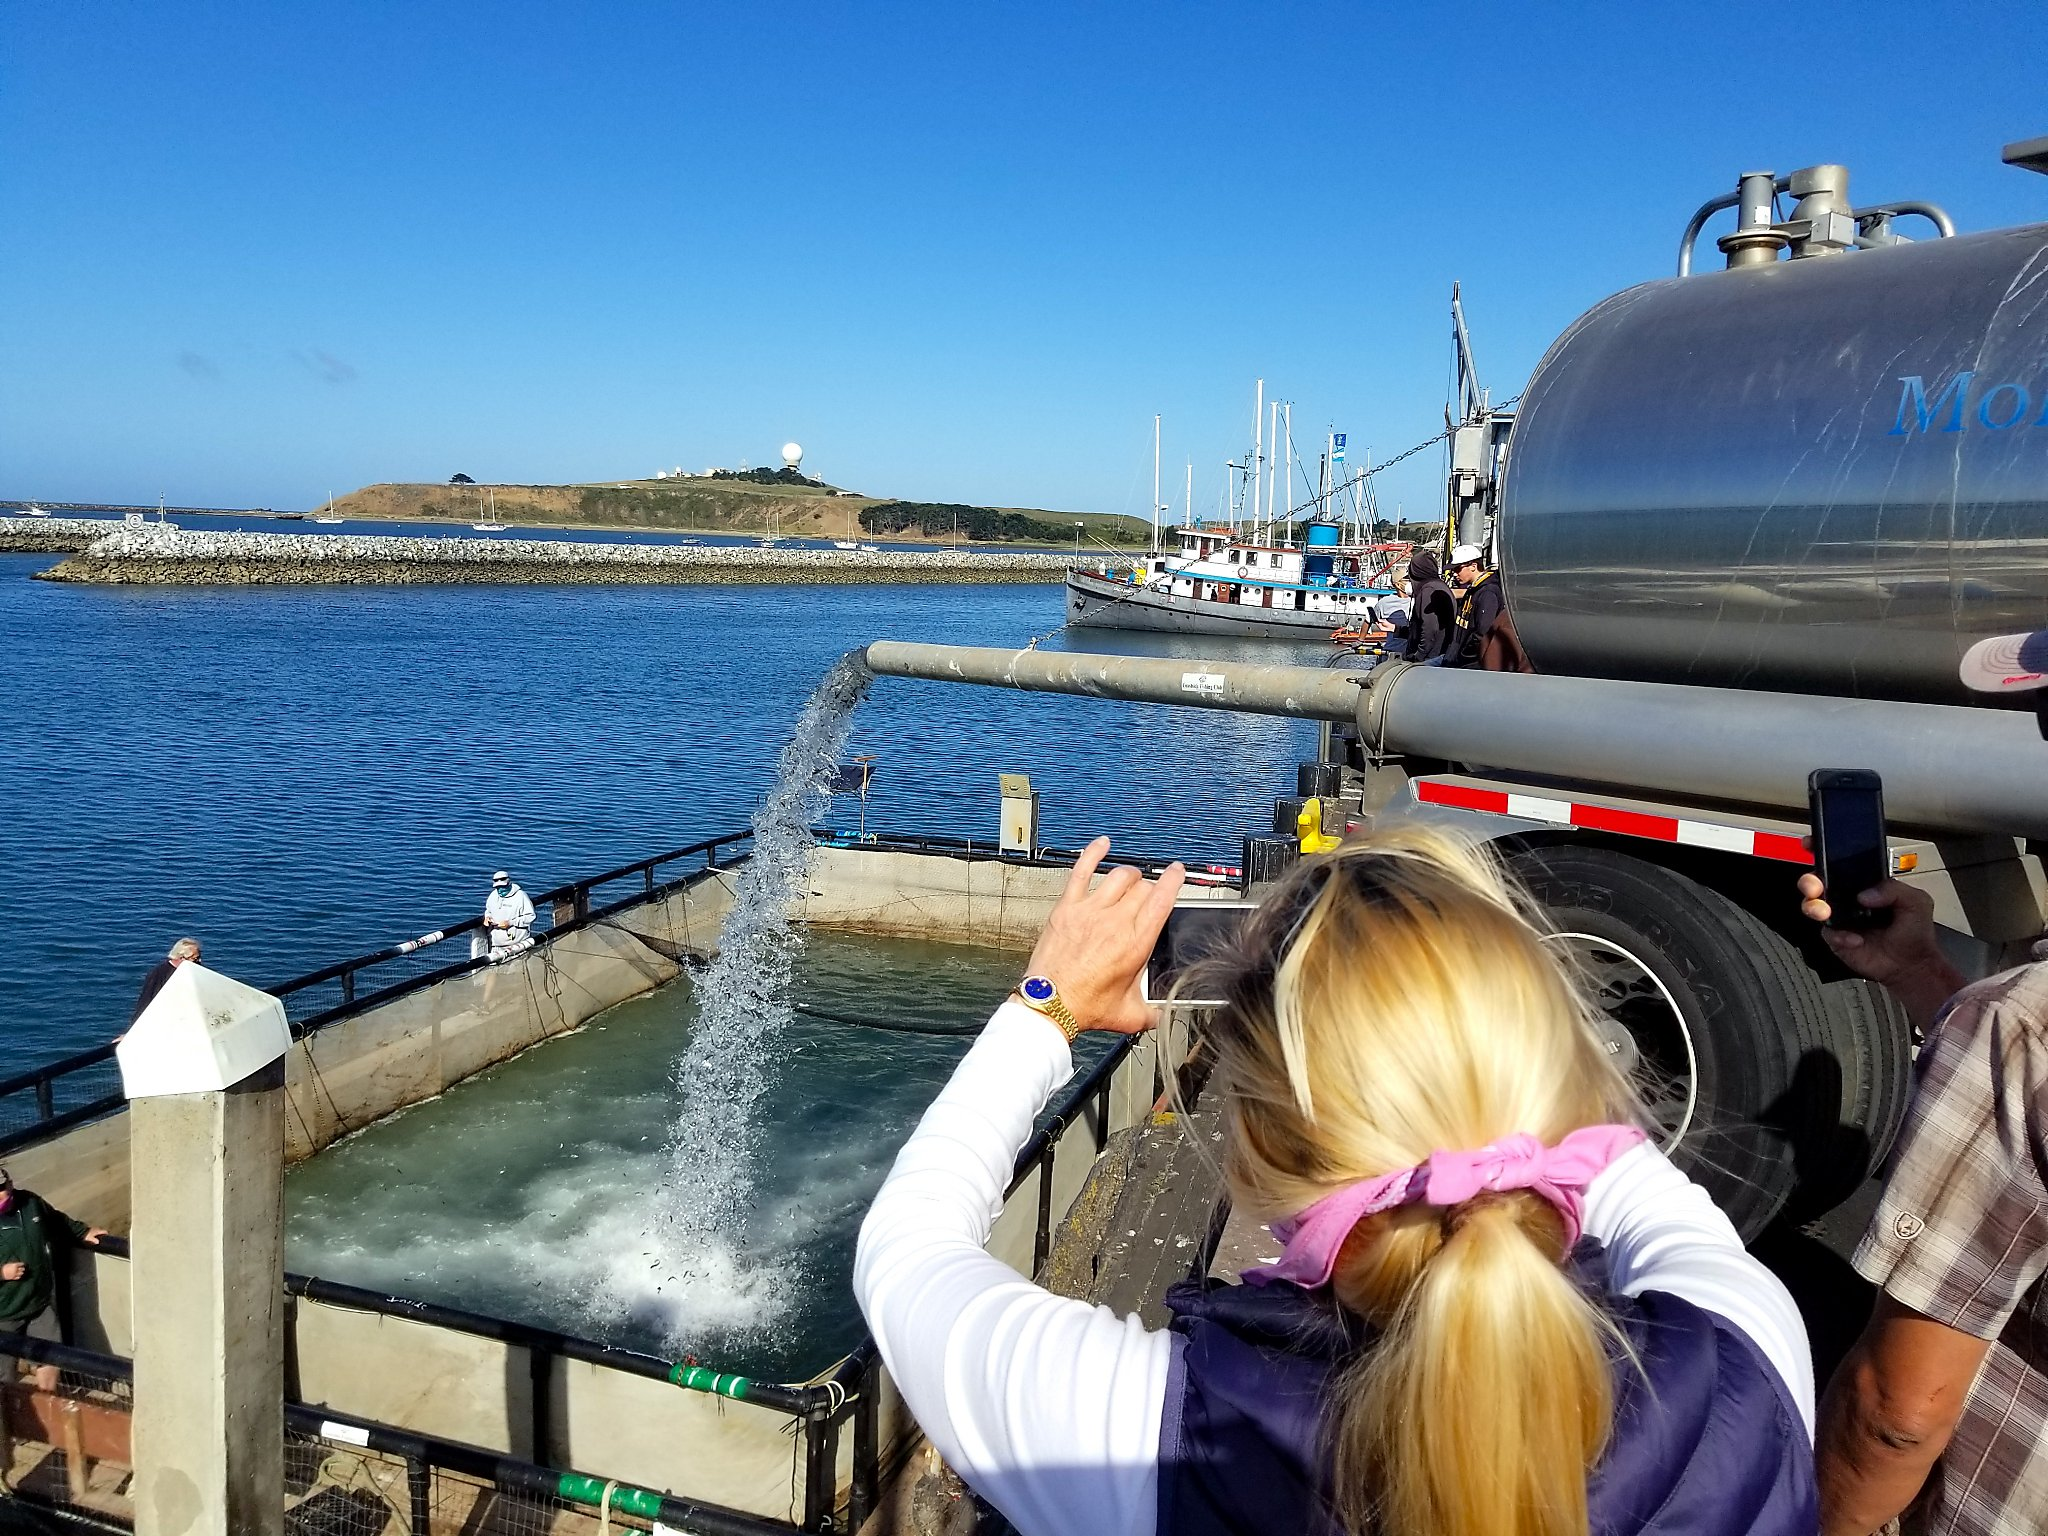 720,000 baby salmon released in Half Moon Bay harbor